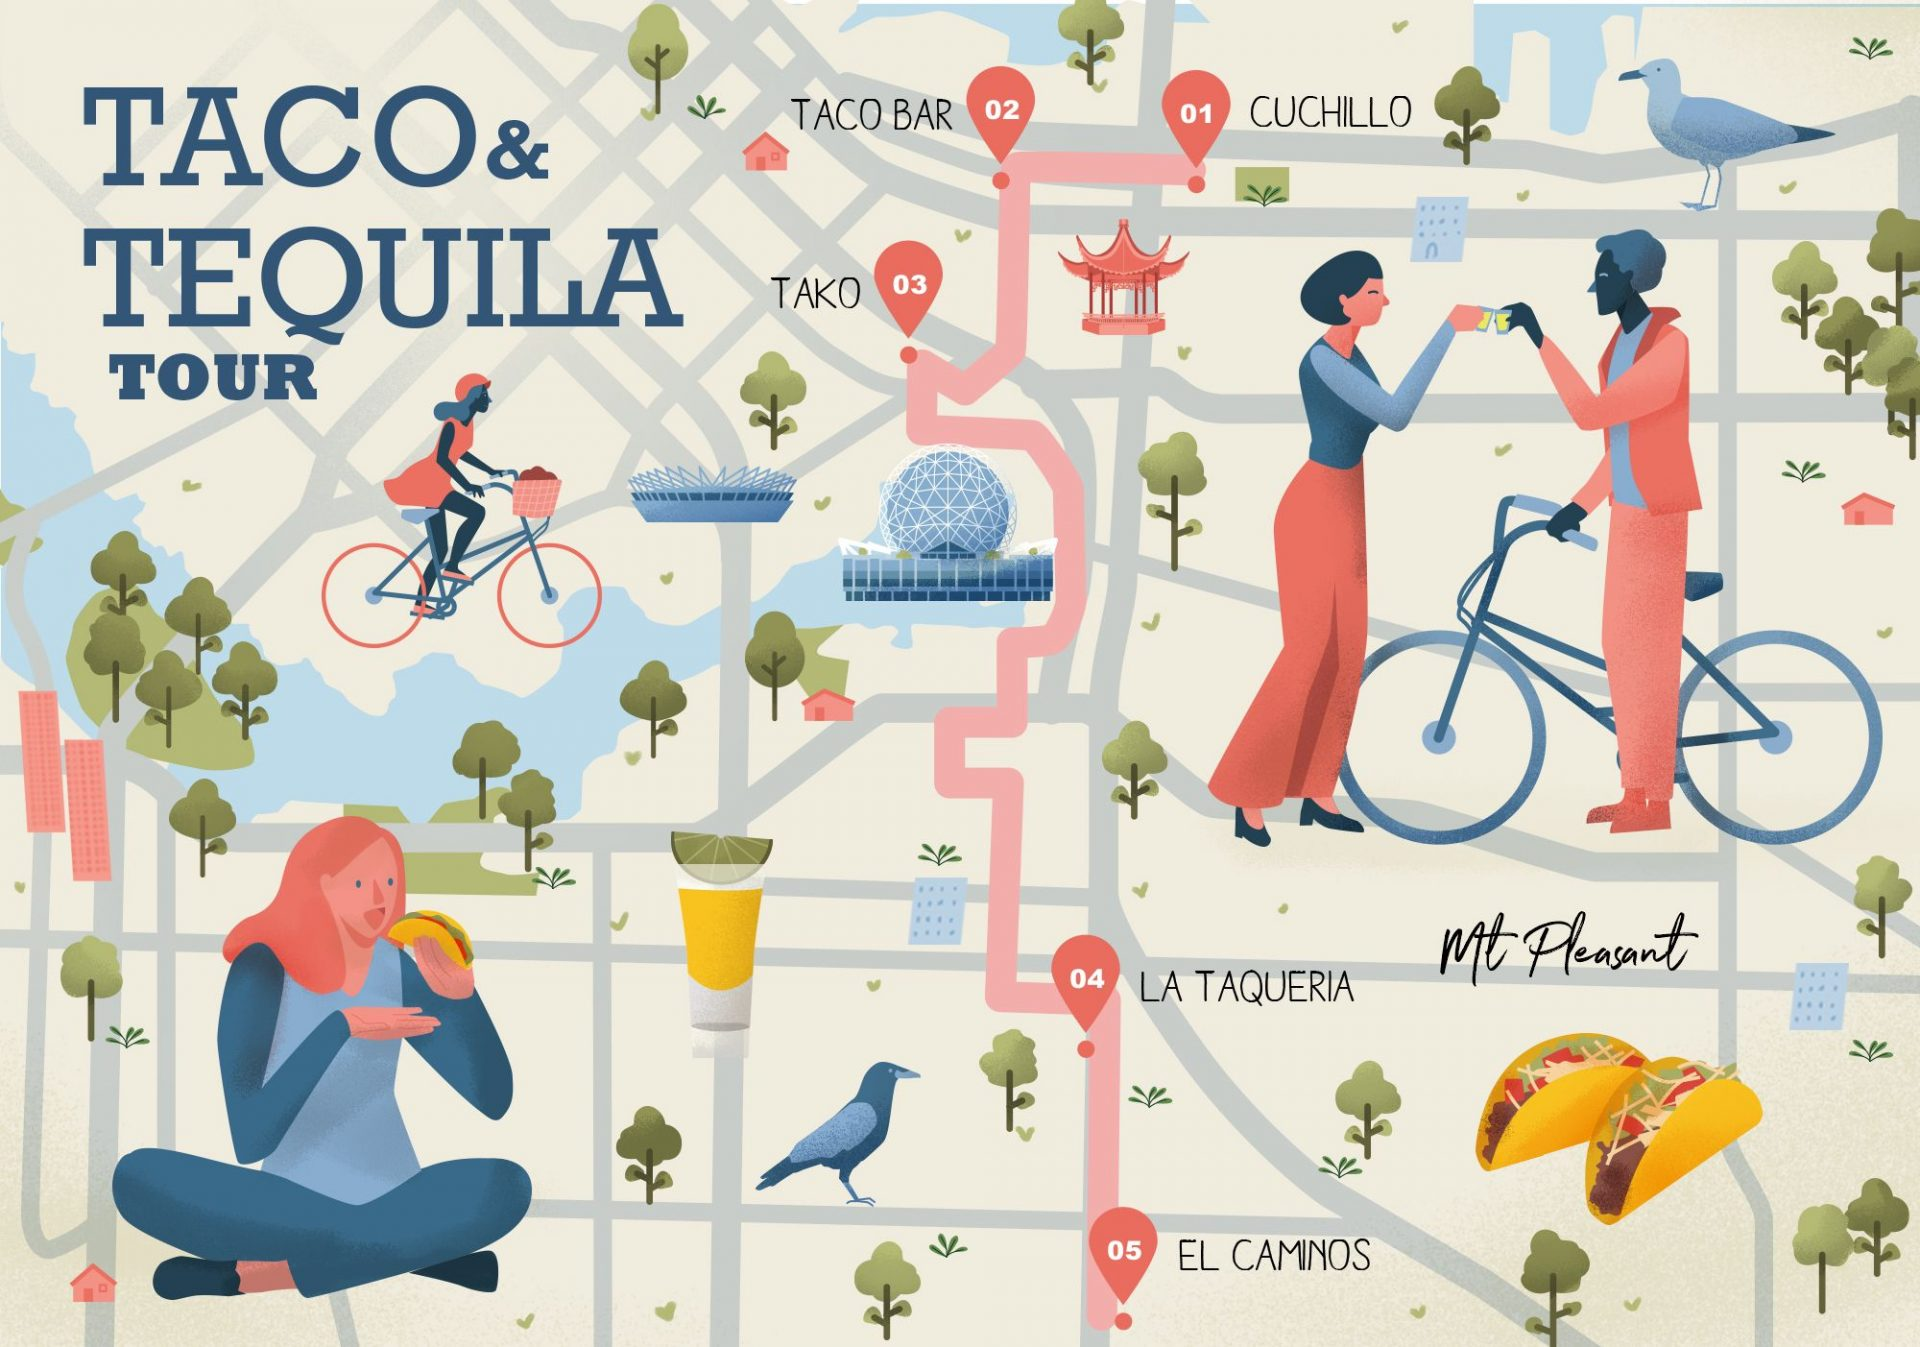 Vancouver Taco and Tequila Tour Map